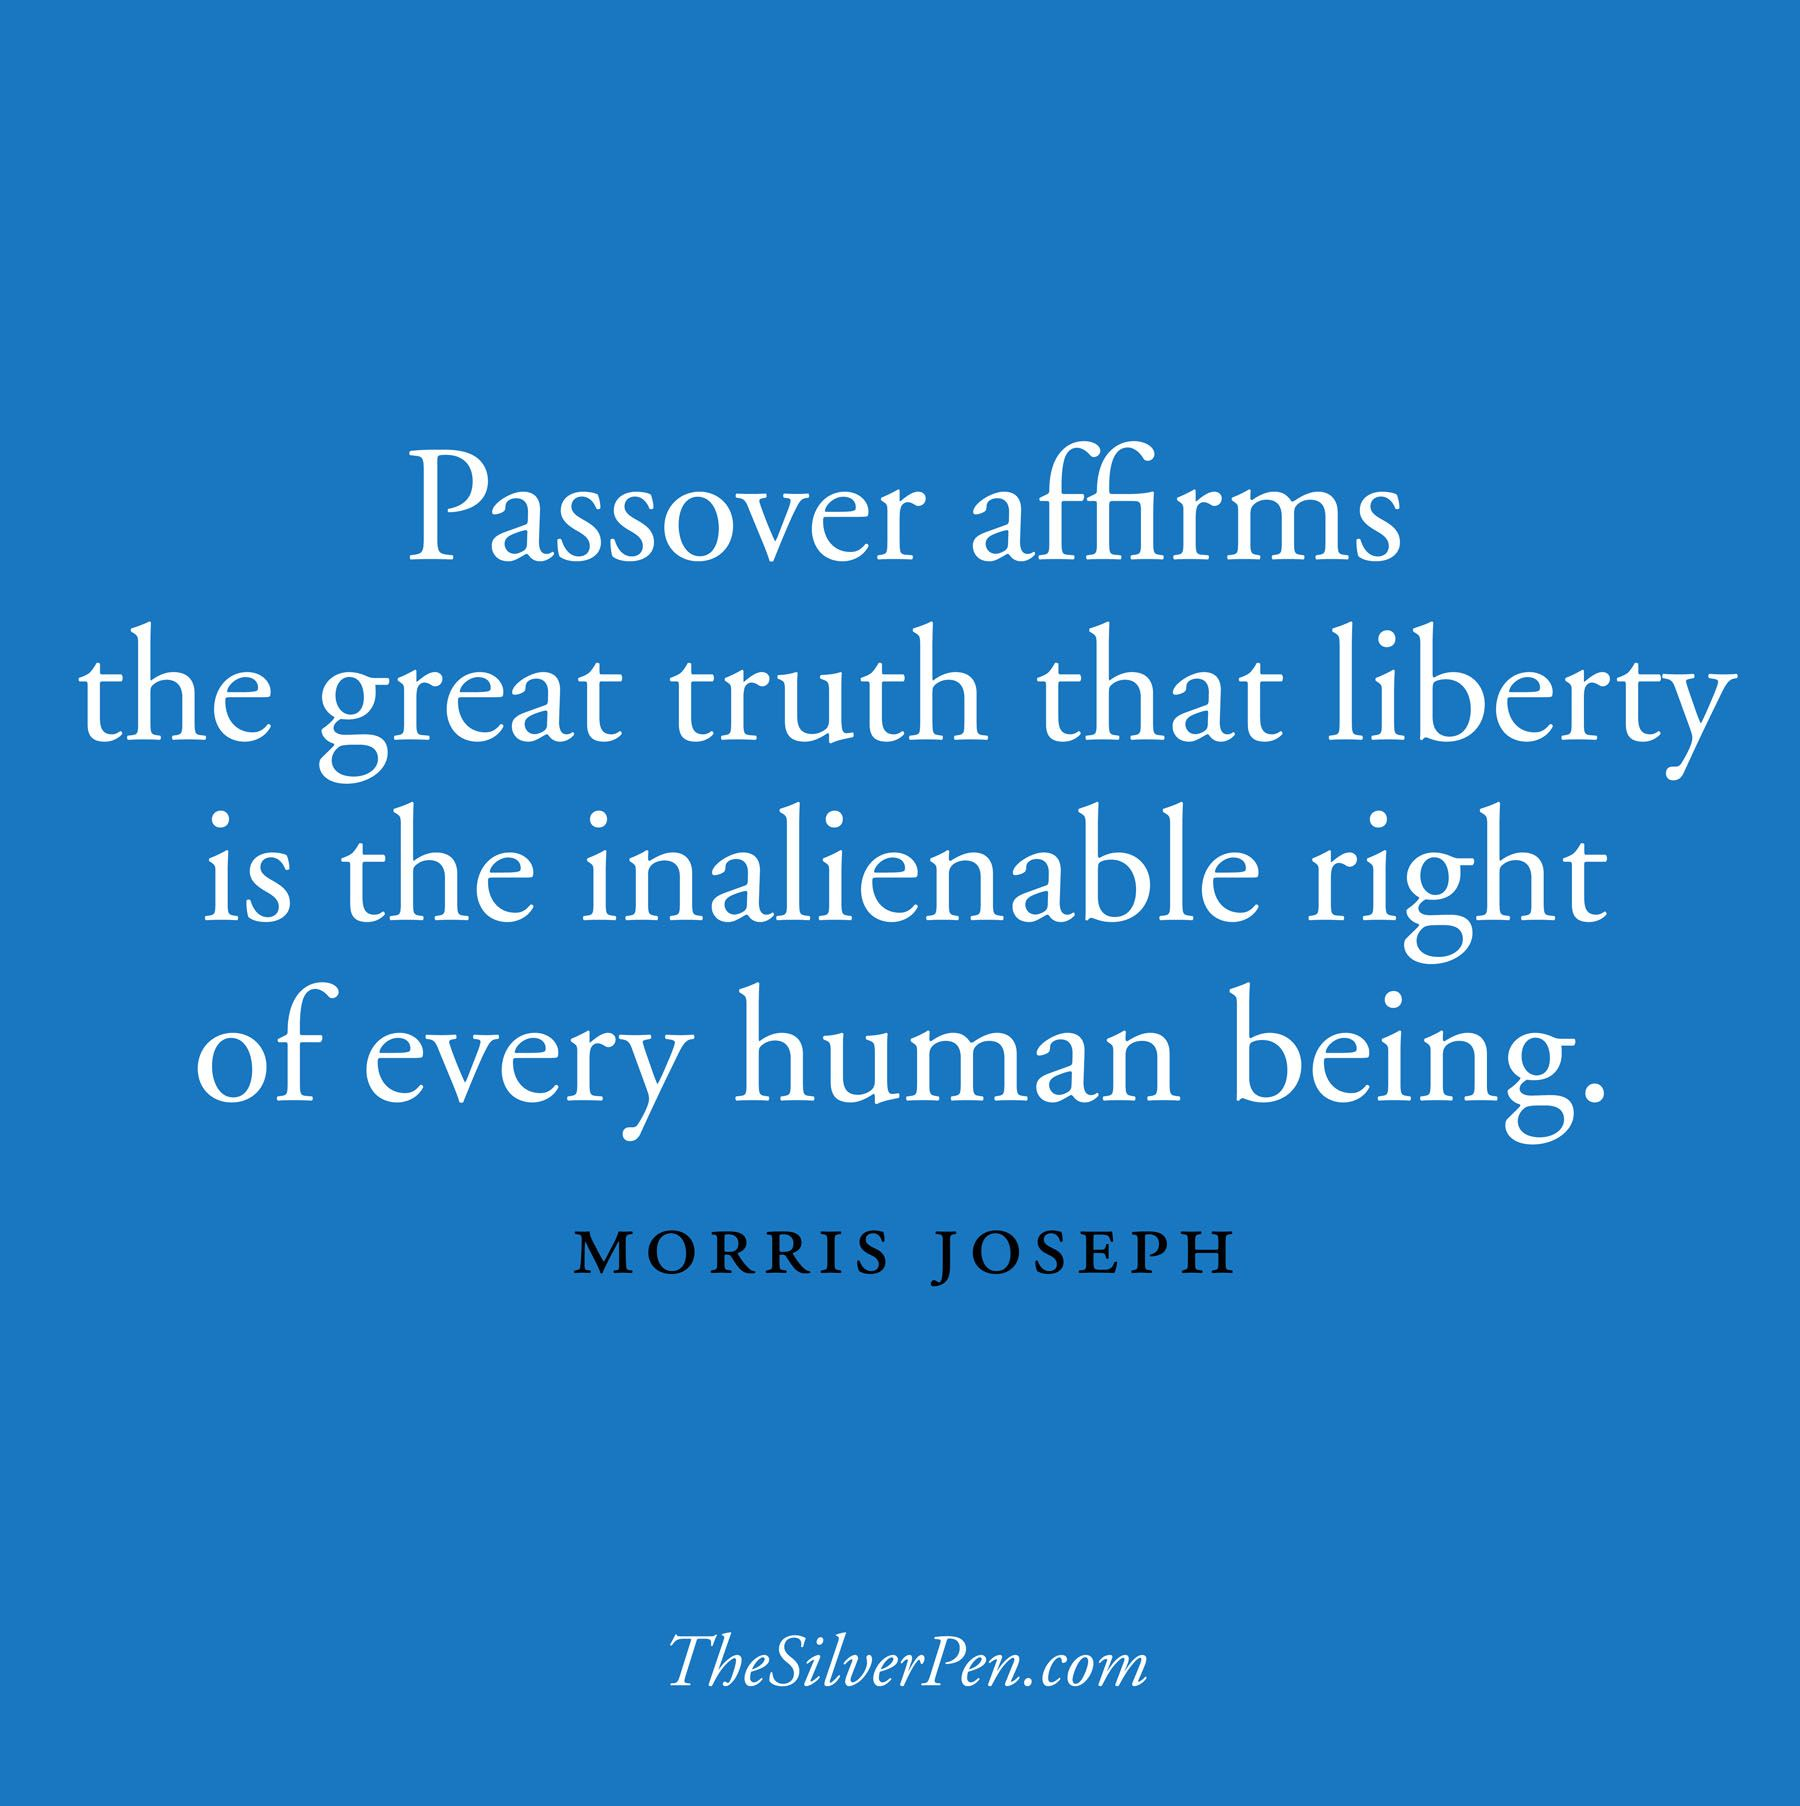 Passover affirms the great truth that liberty is the inalienable passover affirms the great truth that liberty is the inalienable right of every human being m4hsunfo